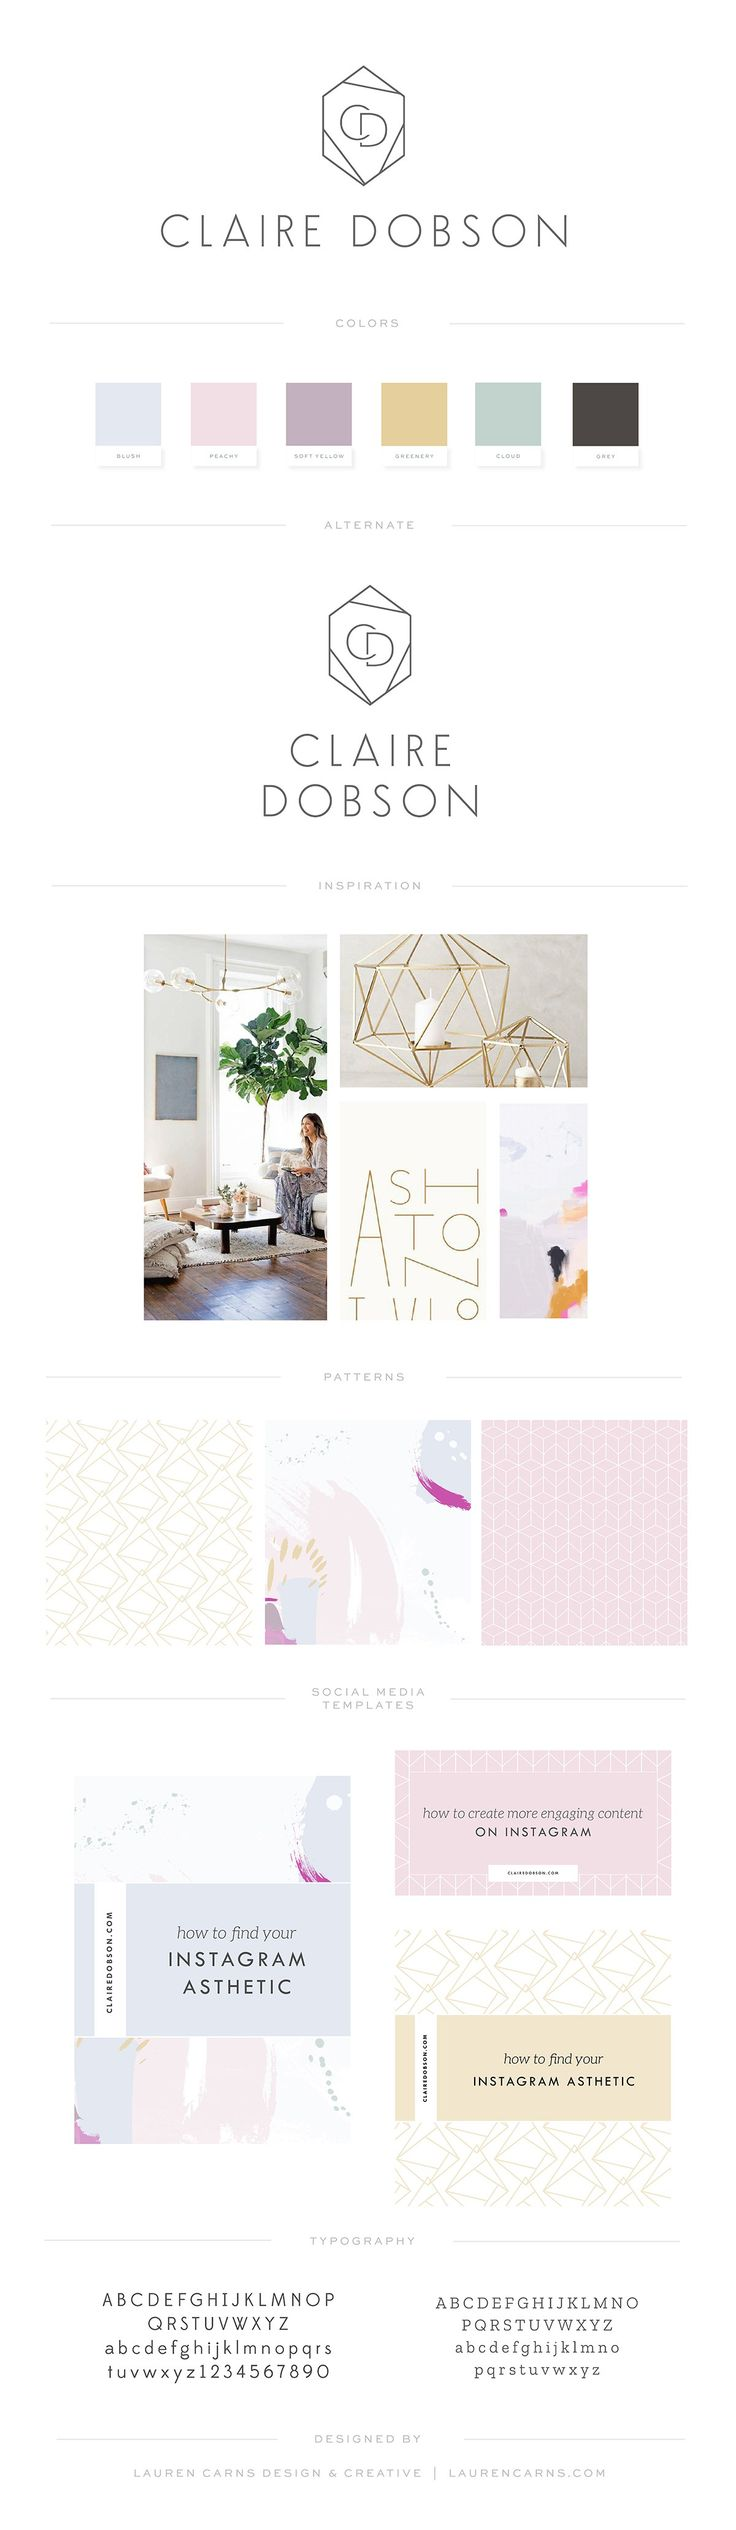 Claire is a photographer-turned-influencer who was launching a new stock site and wanted a refreshed look for her personal brand that reflected her growing audience and interests. Claire had pinned a lot of Art Deco styled type but also had a lot of California boho details on her inspiration board. So we combined them and …